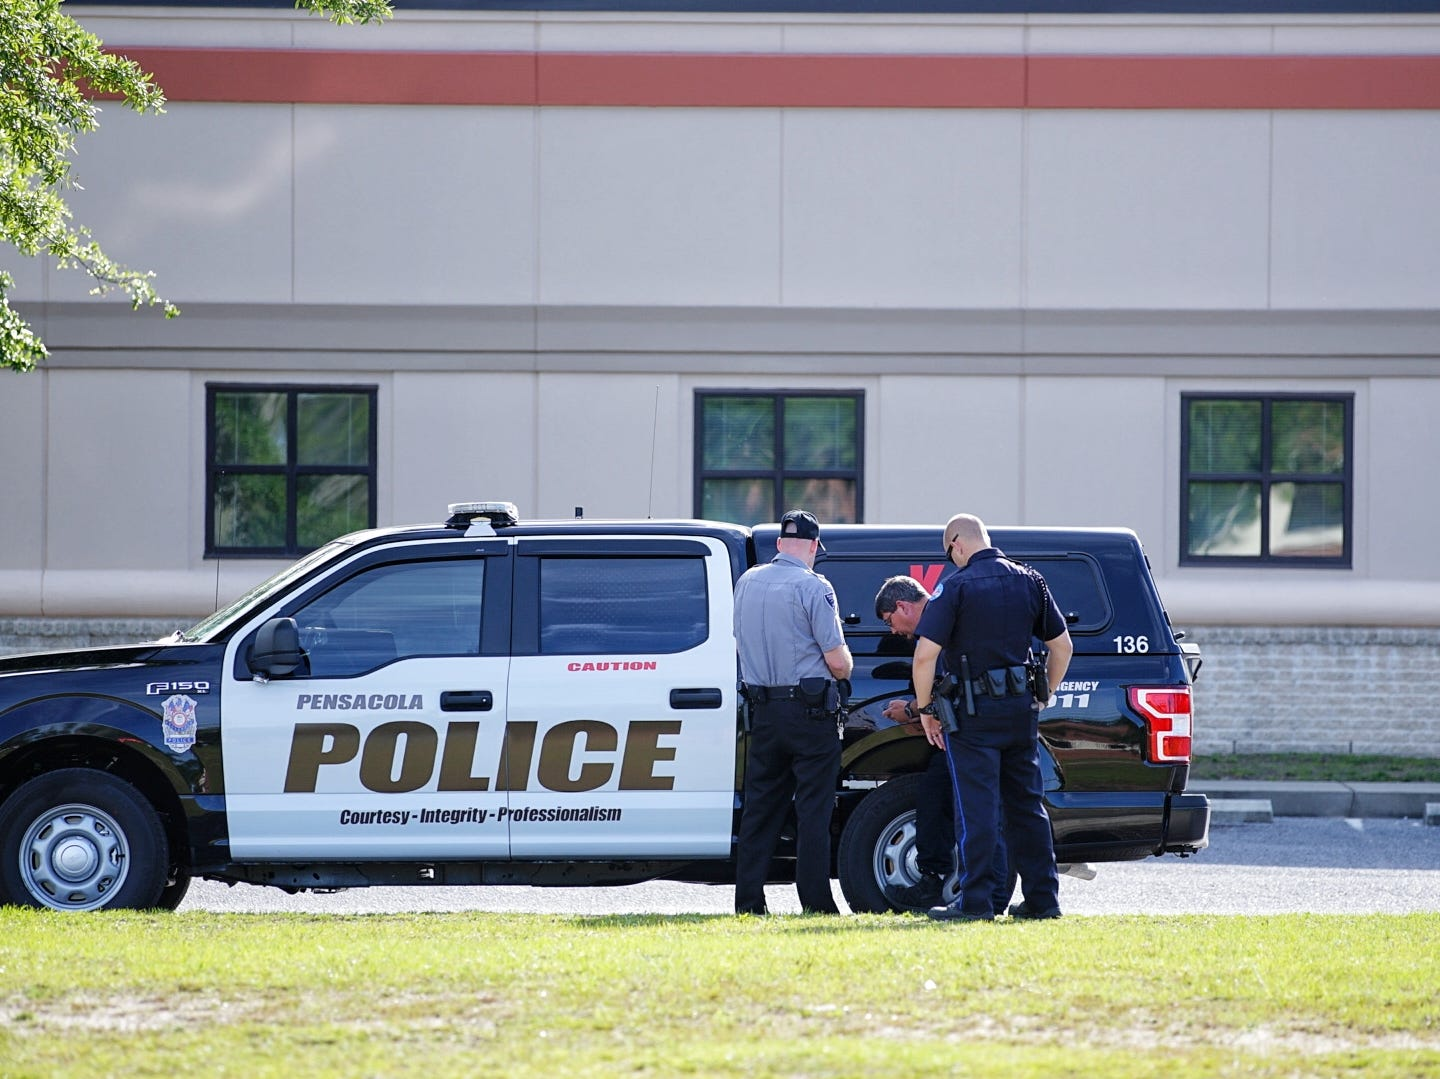 The Pensacola Police Department is investigating a bomb threat at the U.S. Social Security Administration offices at 411 W. Garden St.